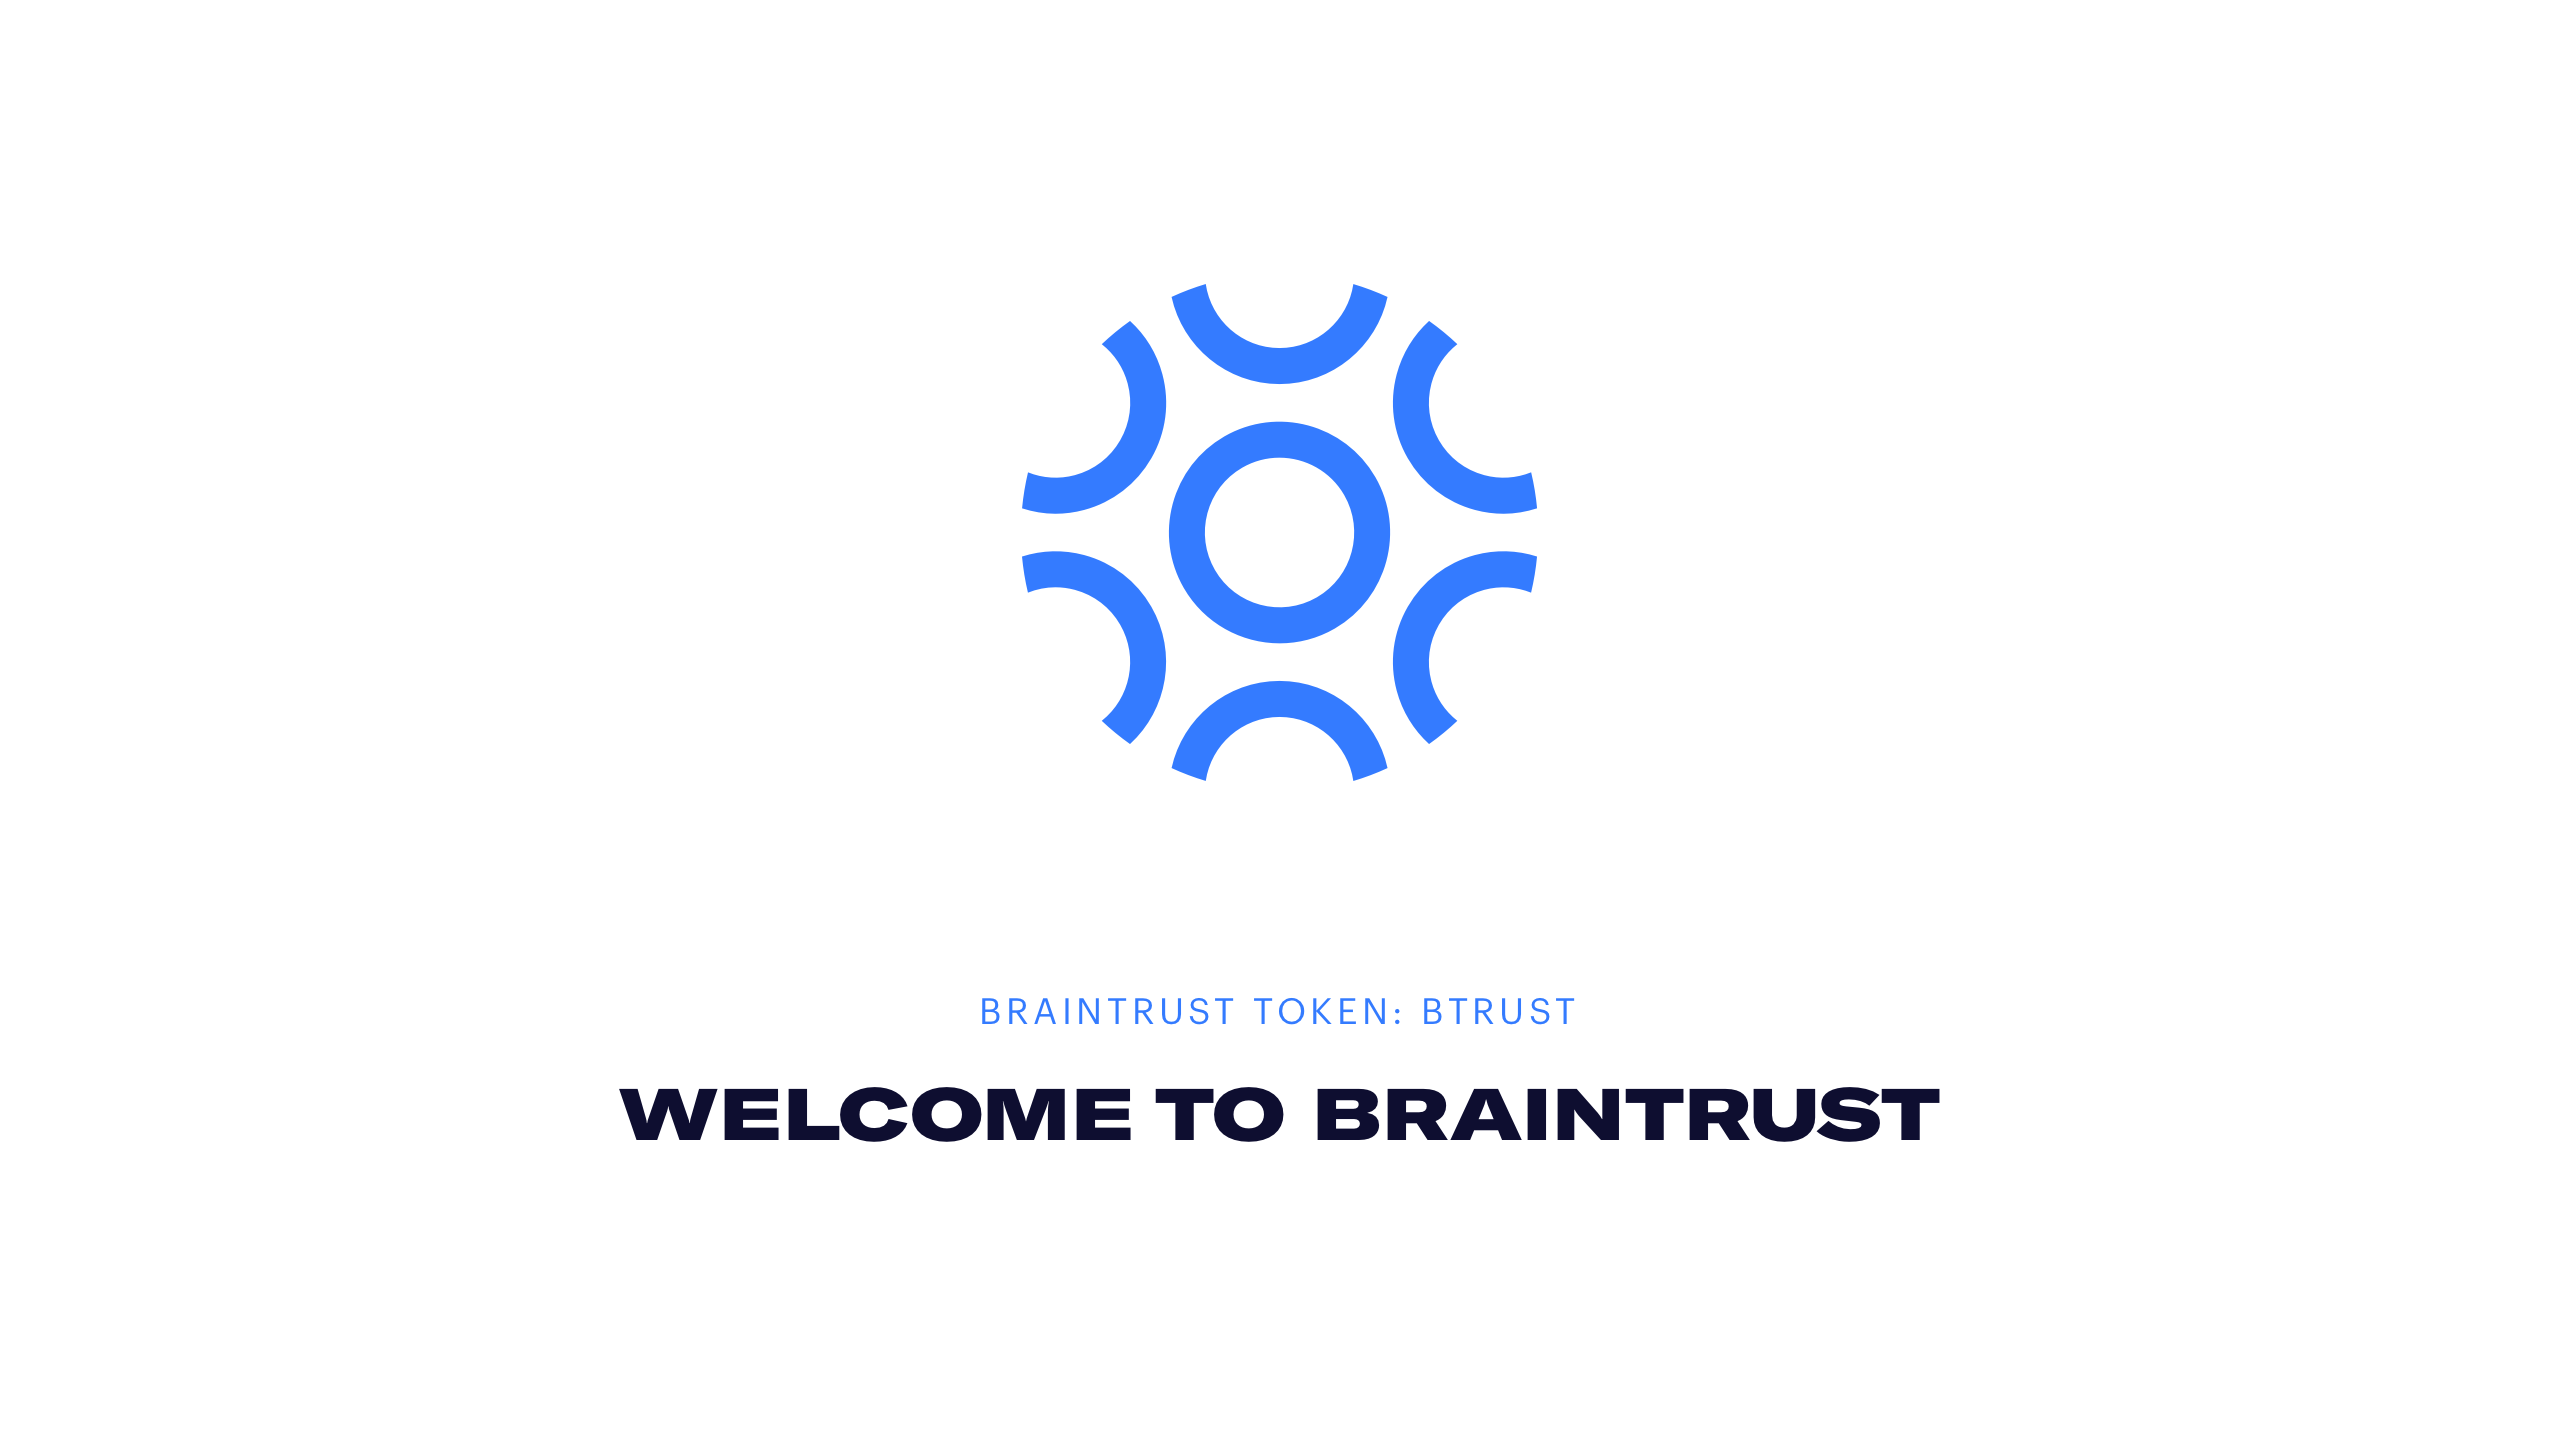 BTRUST - Welcome to Braintrust